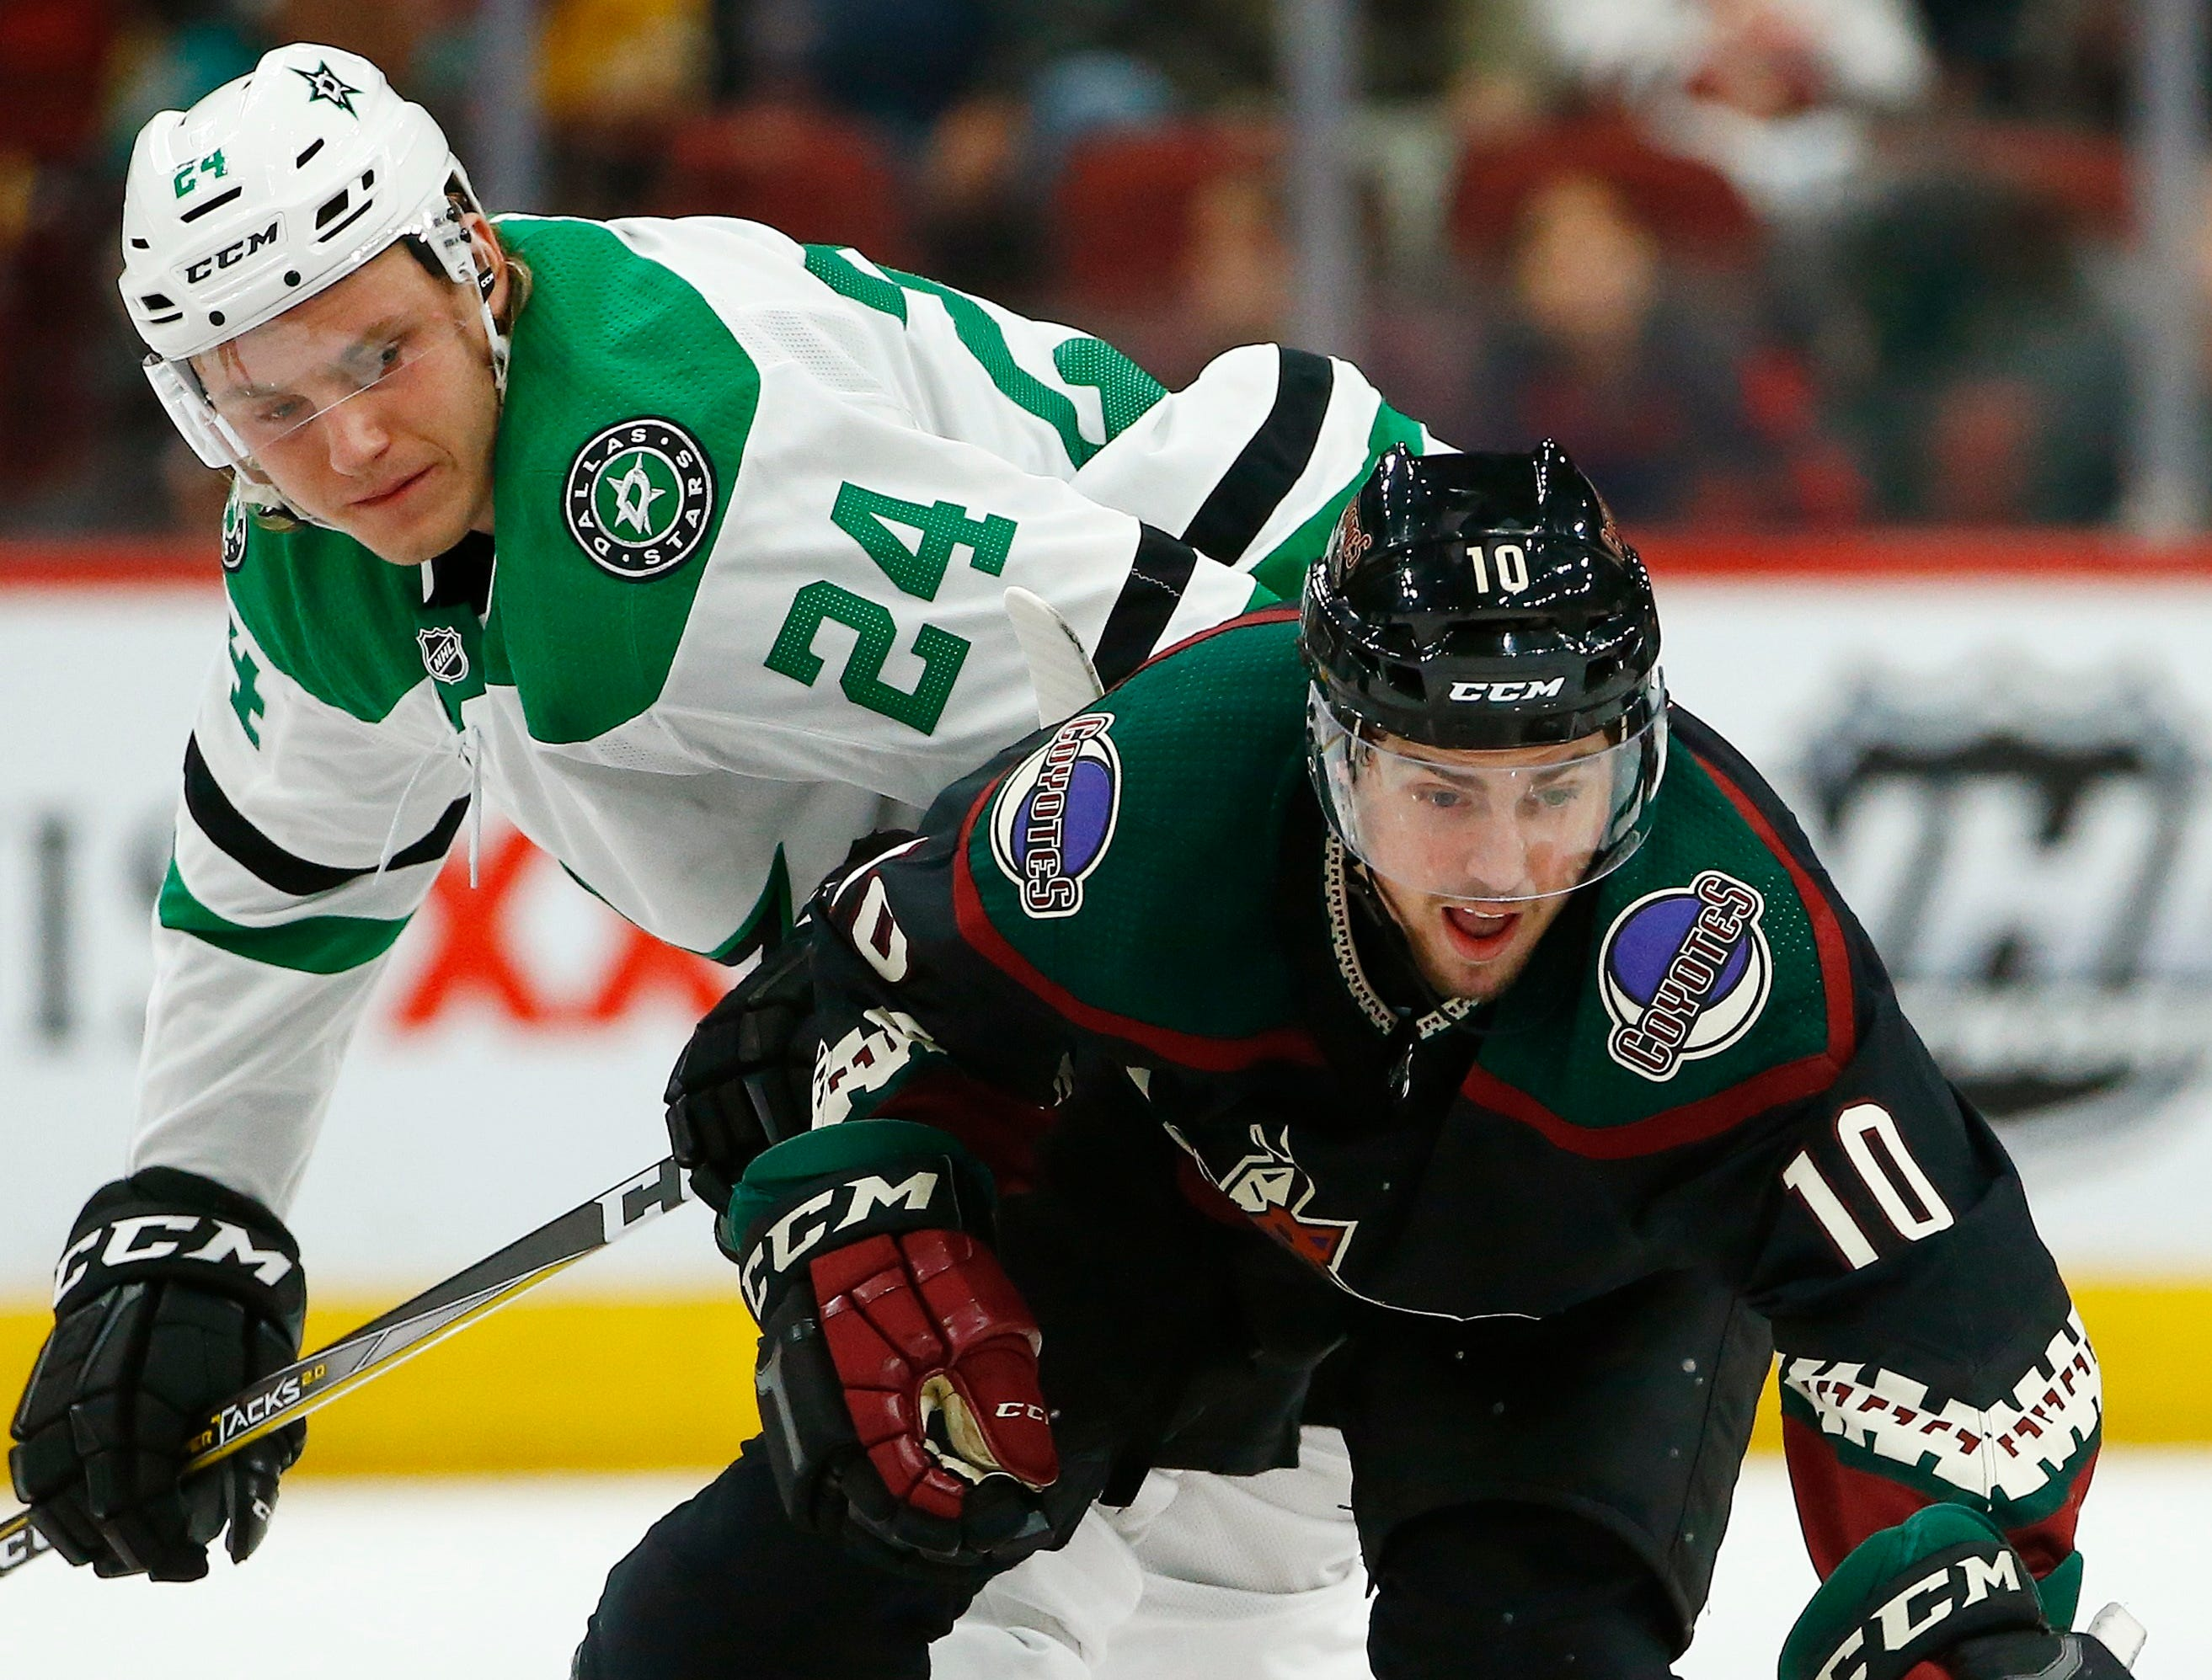 Arizona Coyotes center Jordan Weal (10) passes the puck in front of Dallas Stars left wing Roope Hintz (24) during the third period of an NHL hockey game Saturday, Feb. 9, 2019, in Glendale, Ariz. (AP Photo/Ross D. Franklin)